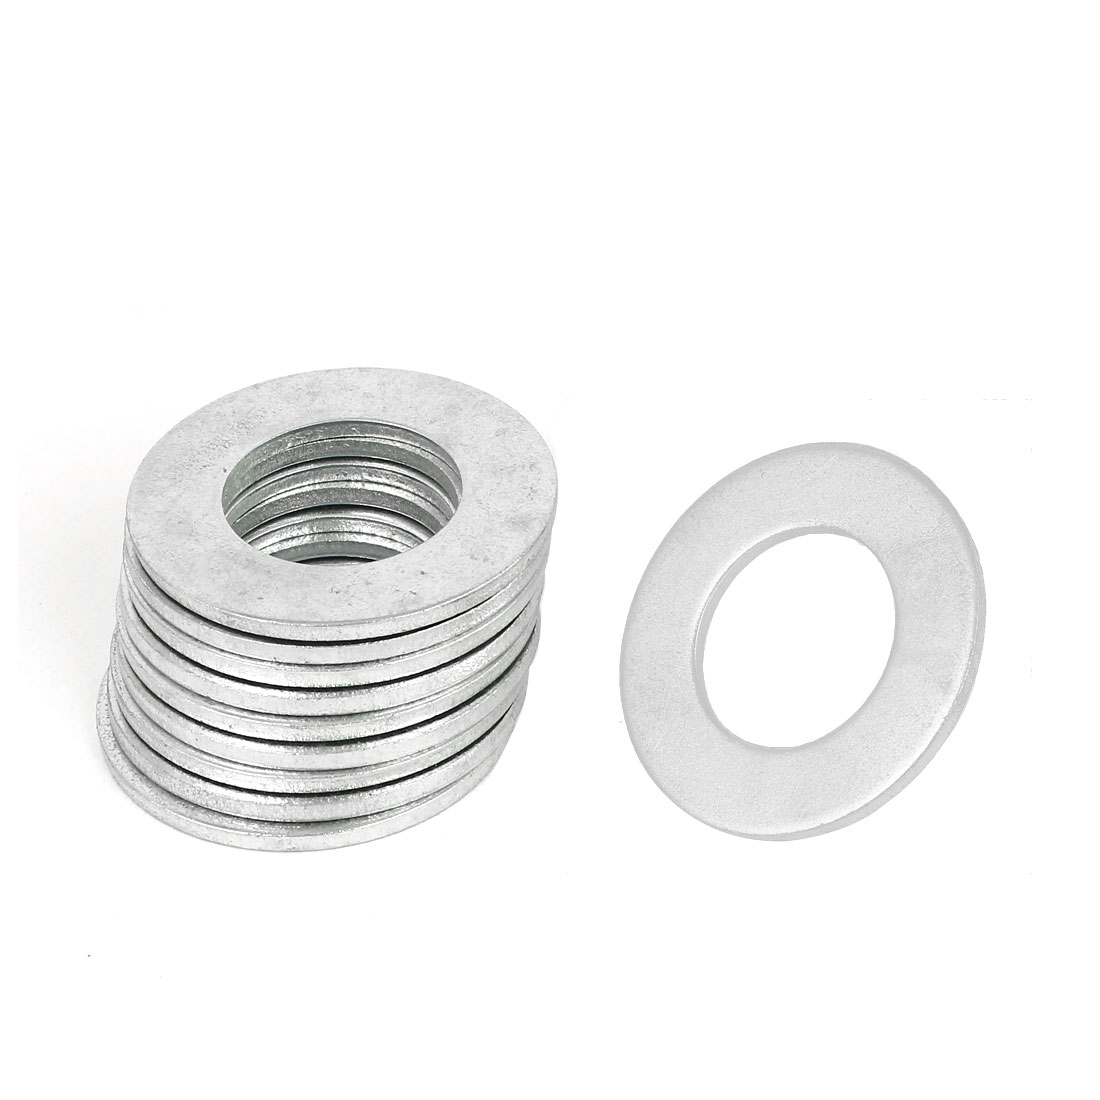 30mm x 54mm Zinc Plated Flat Spacers Washers Gaskets Fasteners GB97 10PCS